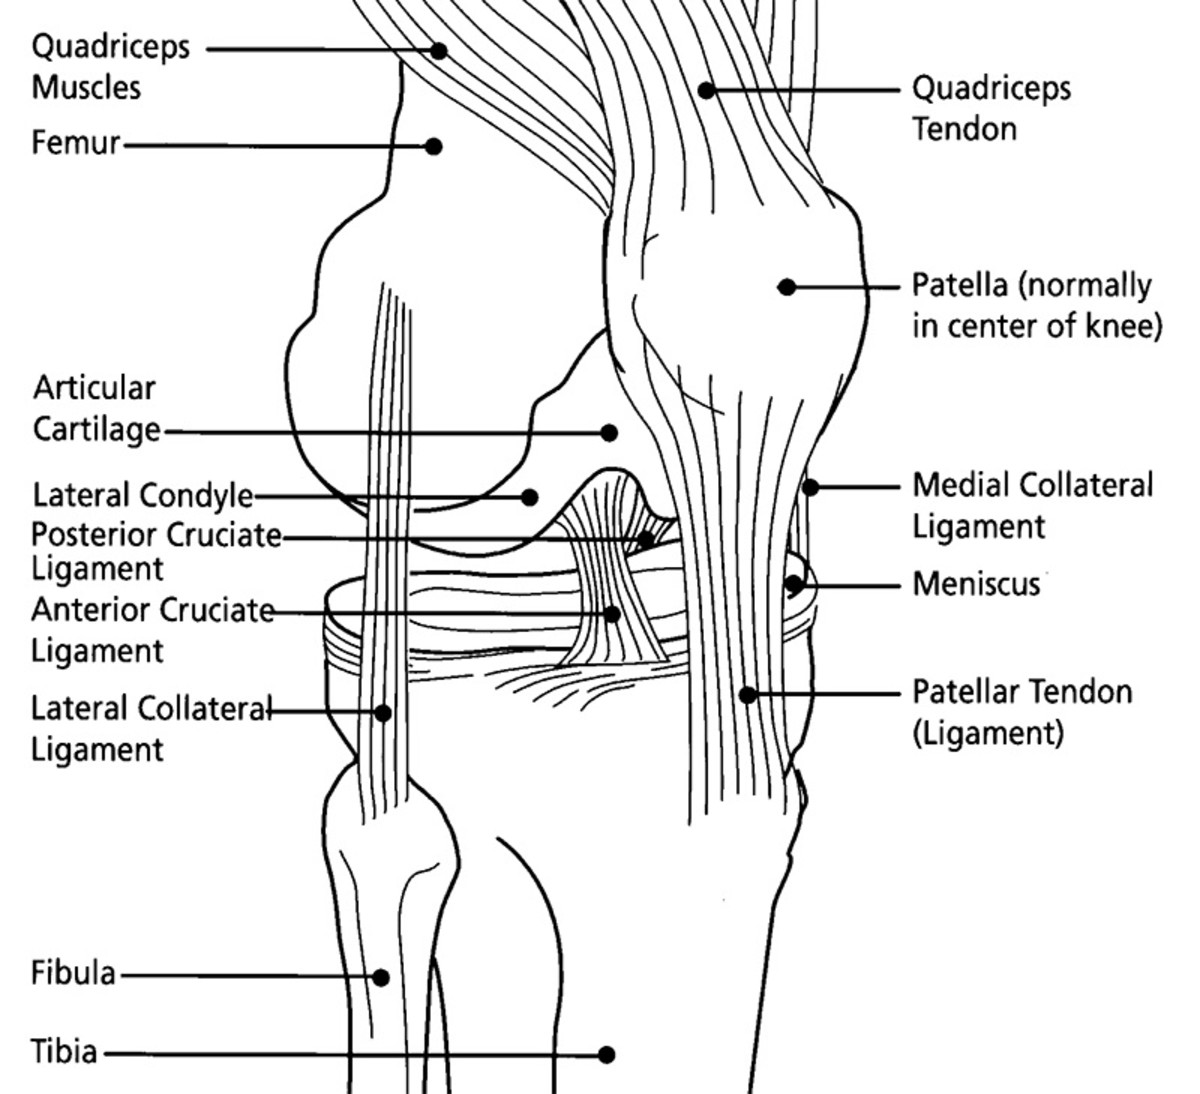 Anatomy of the Knee Joint | Owlcation